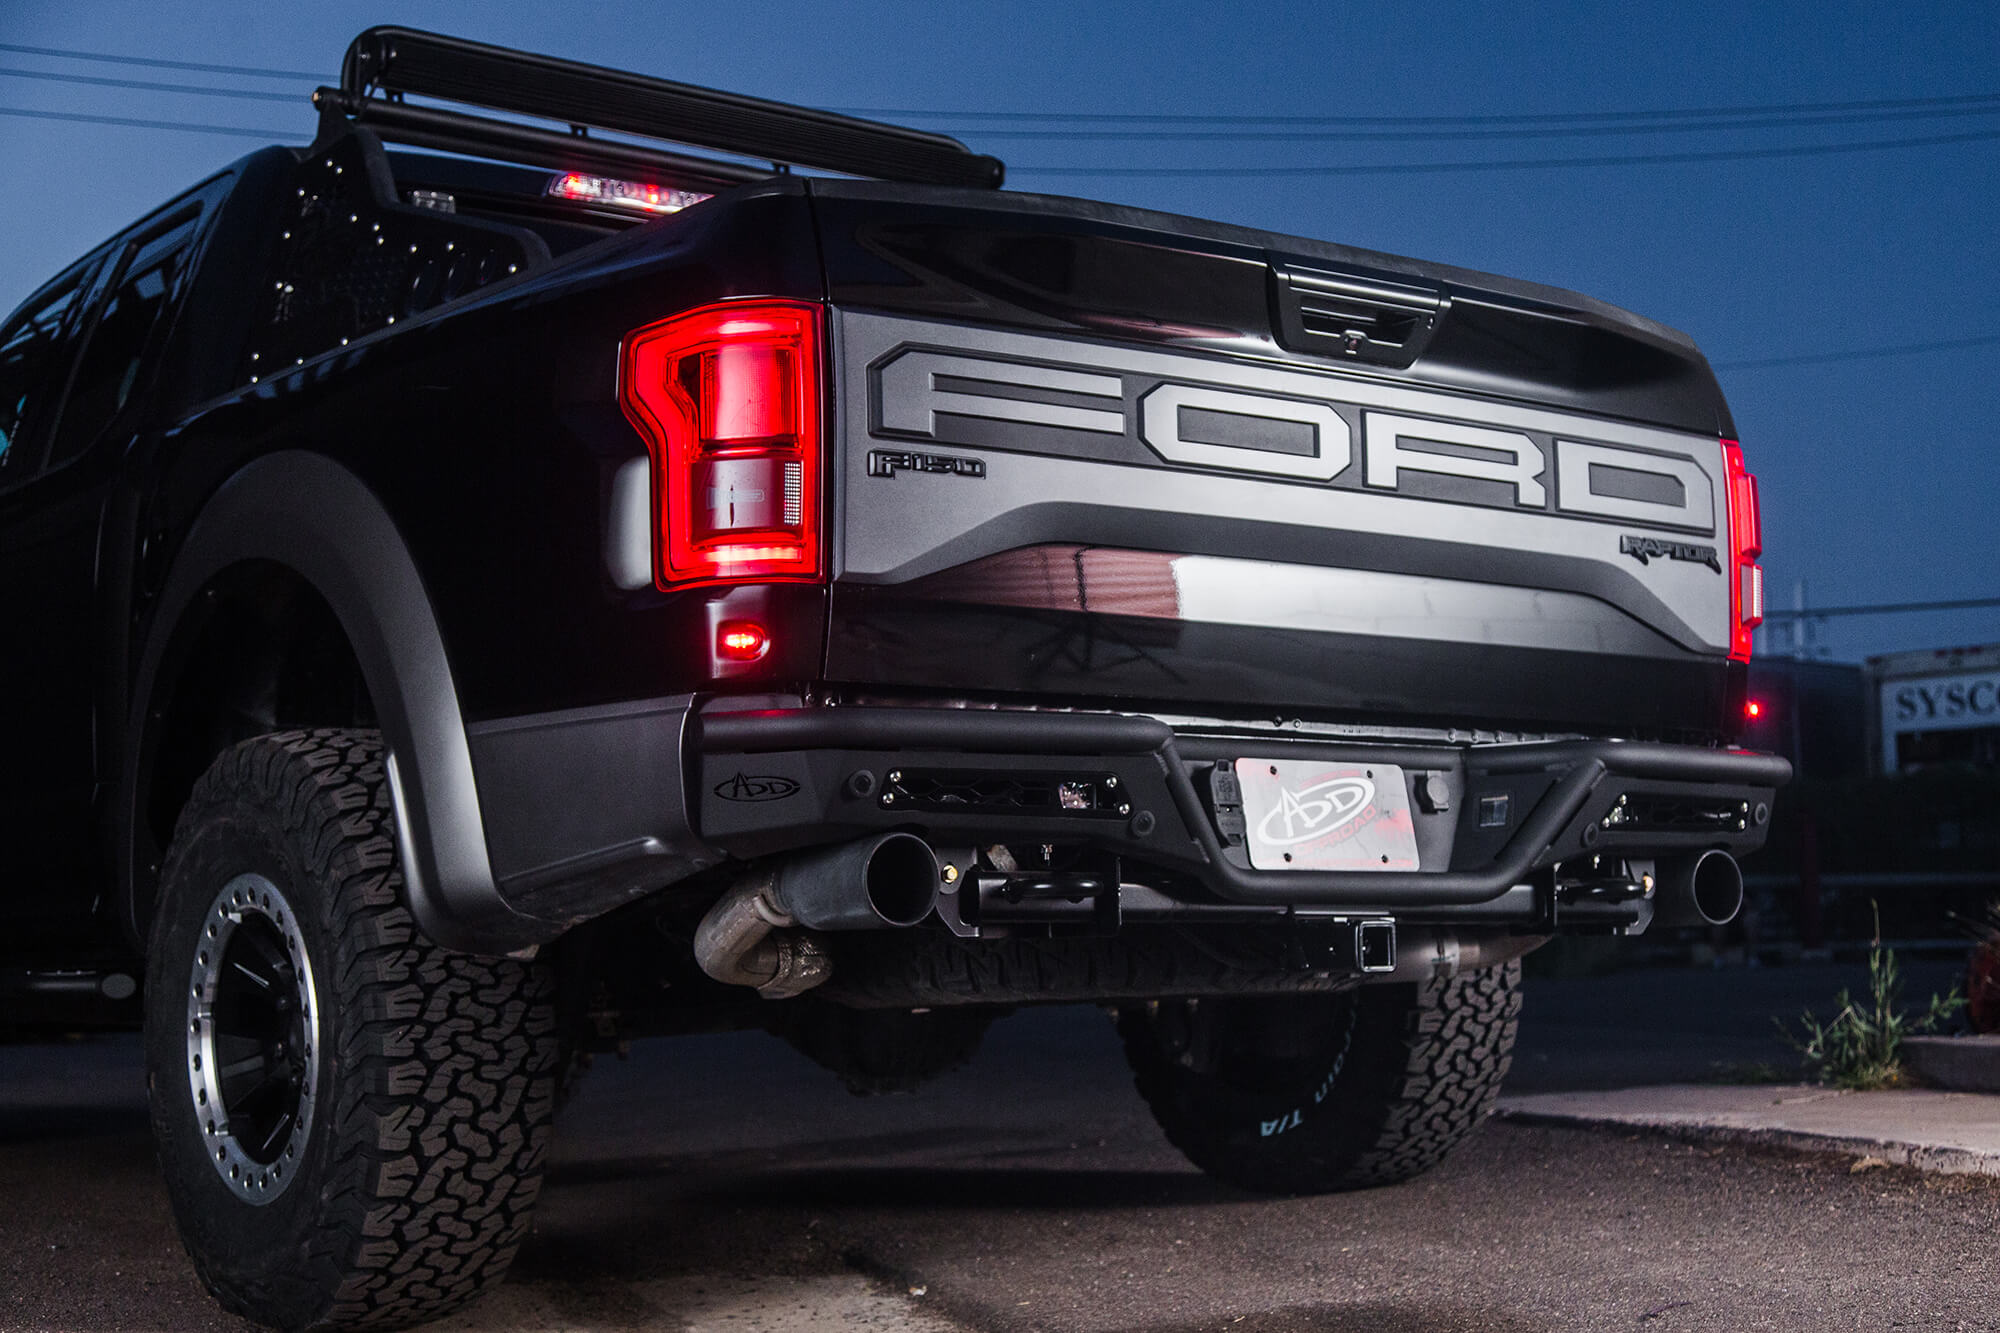 Off Road Bumpers F150 >> 2017 Raptor ADD Stealth R Rear Off-Road Bumper R113401280103 - 5 Star Tuning